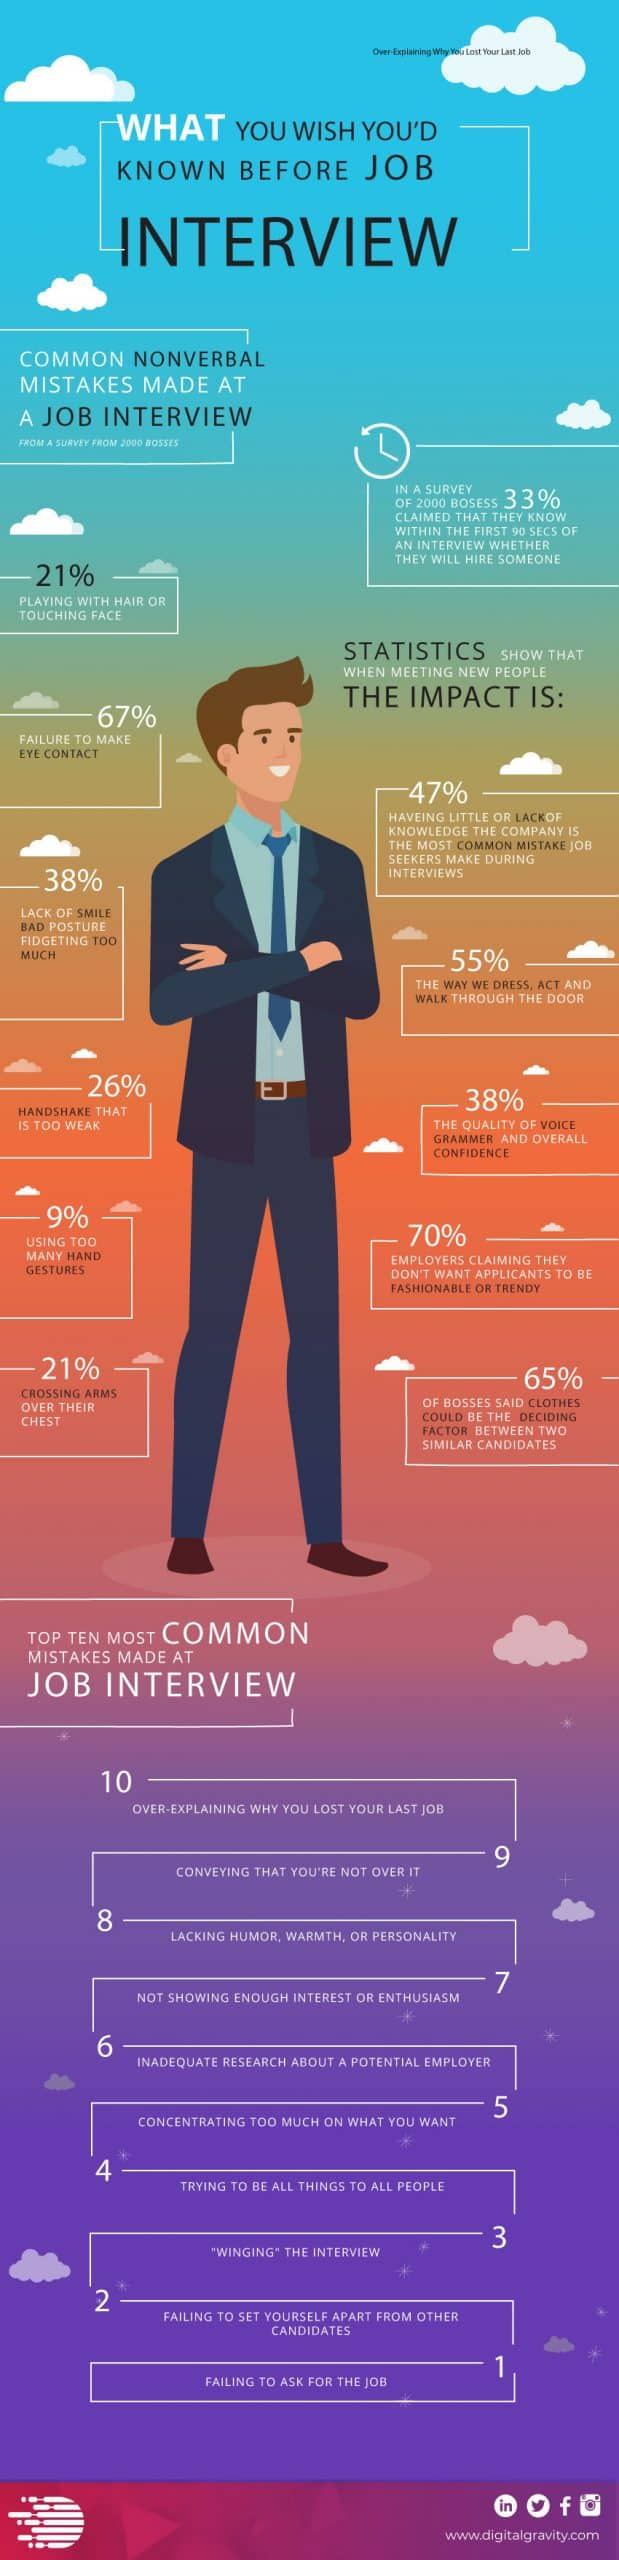 Interview mistakes yuo should avoid - Infographic